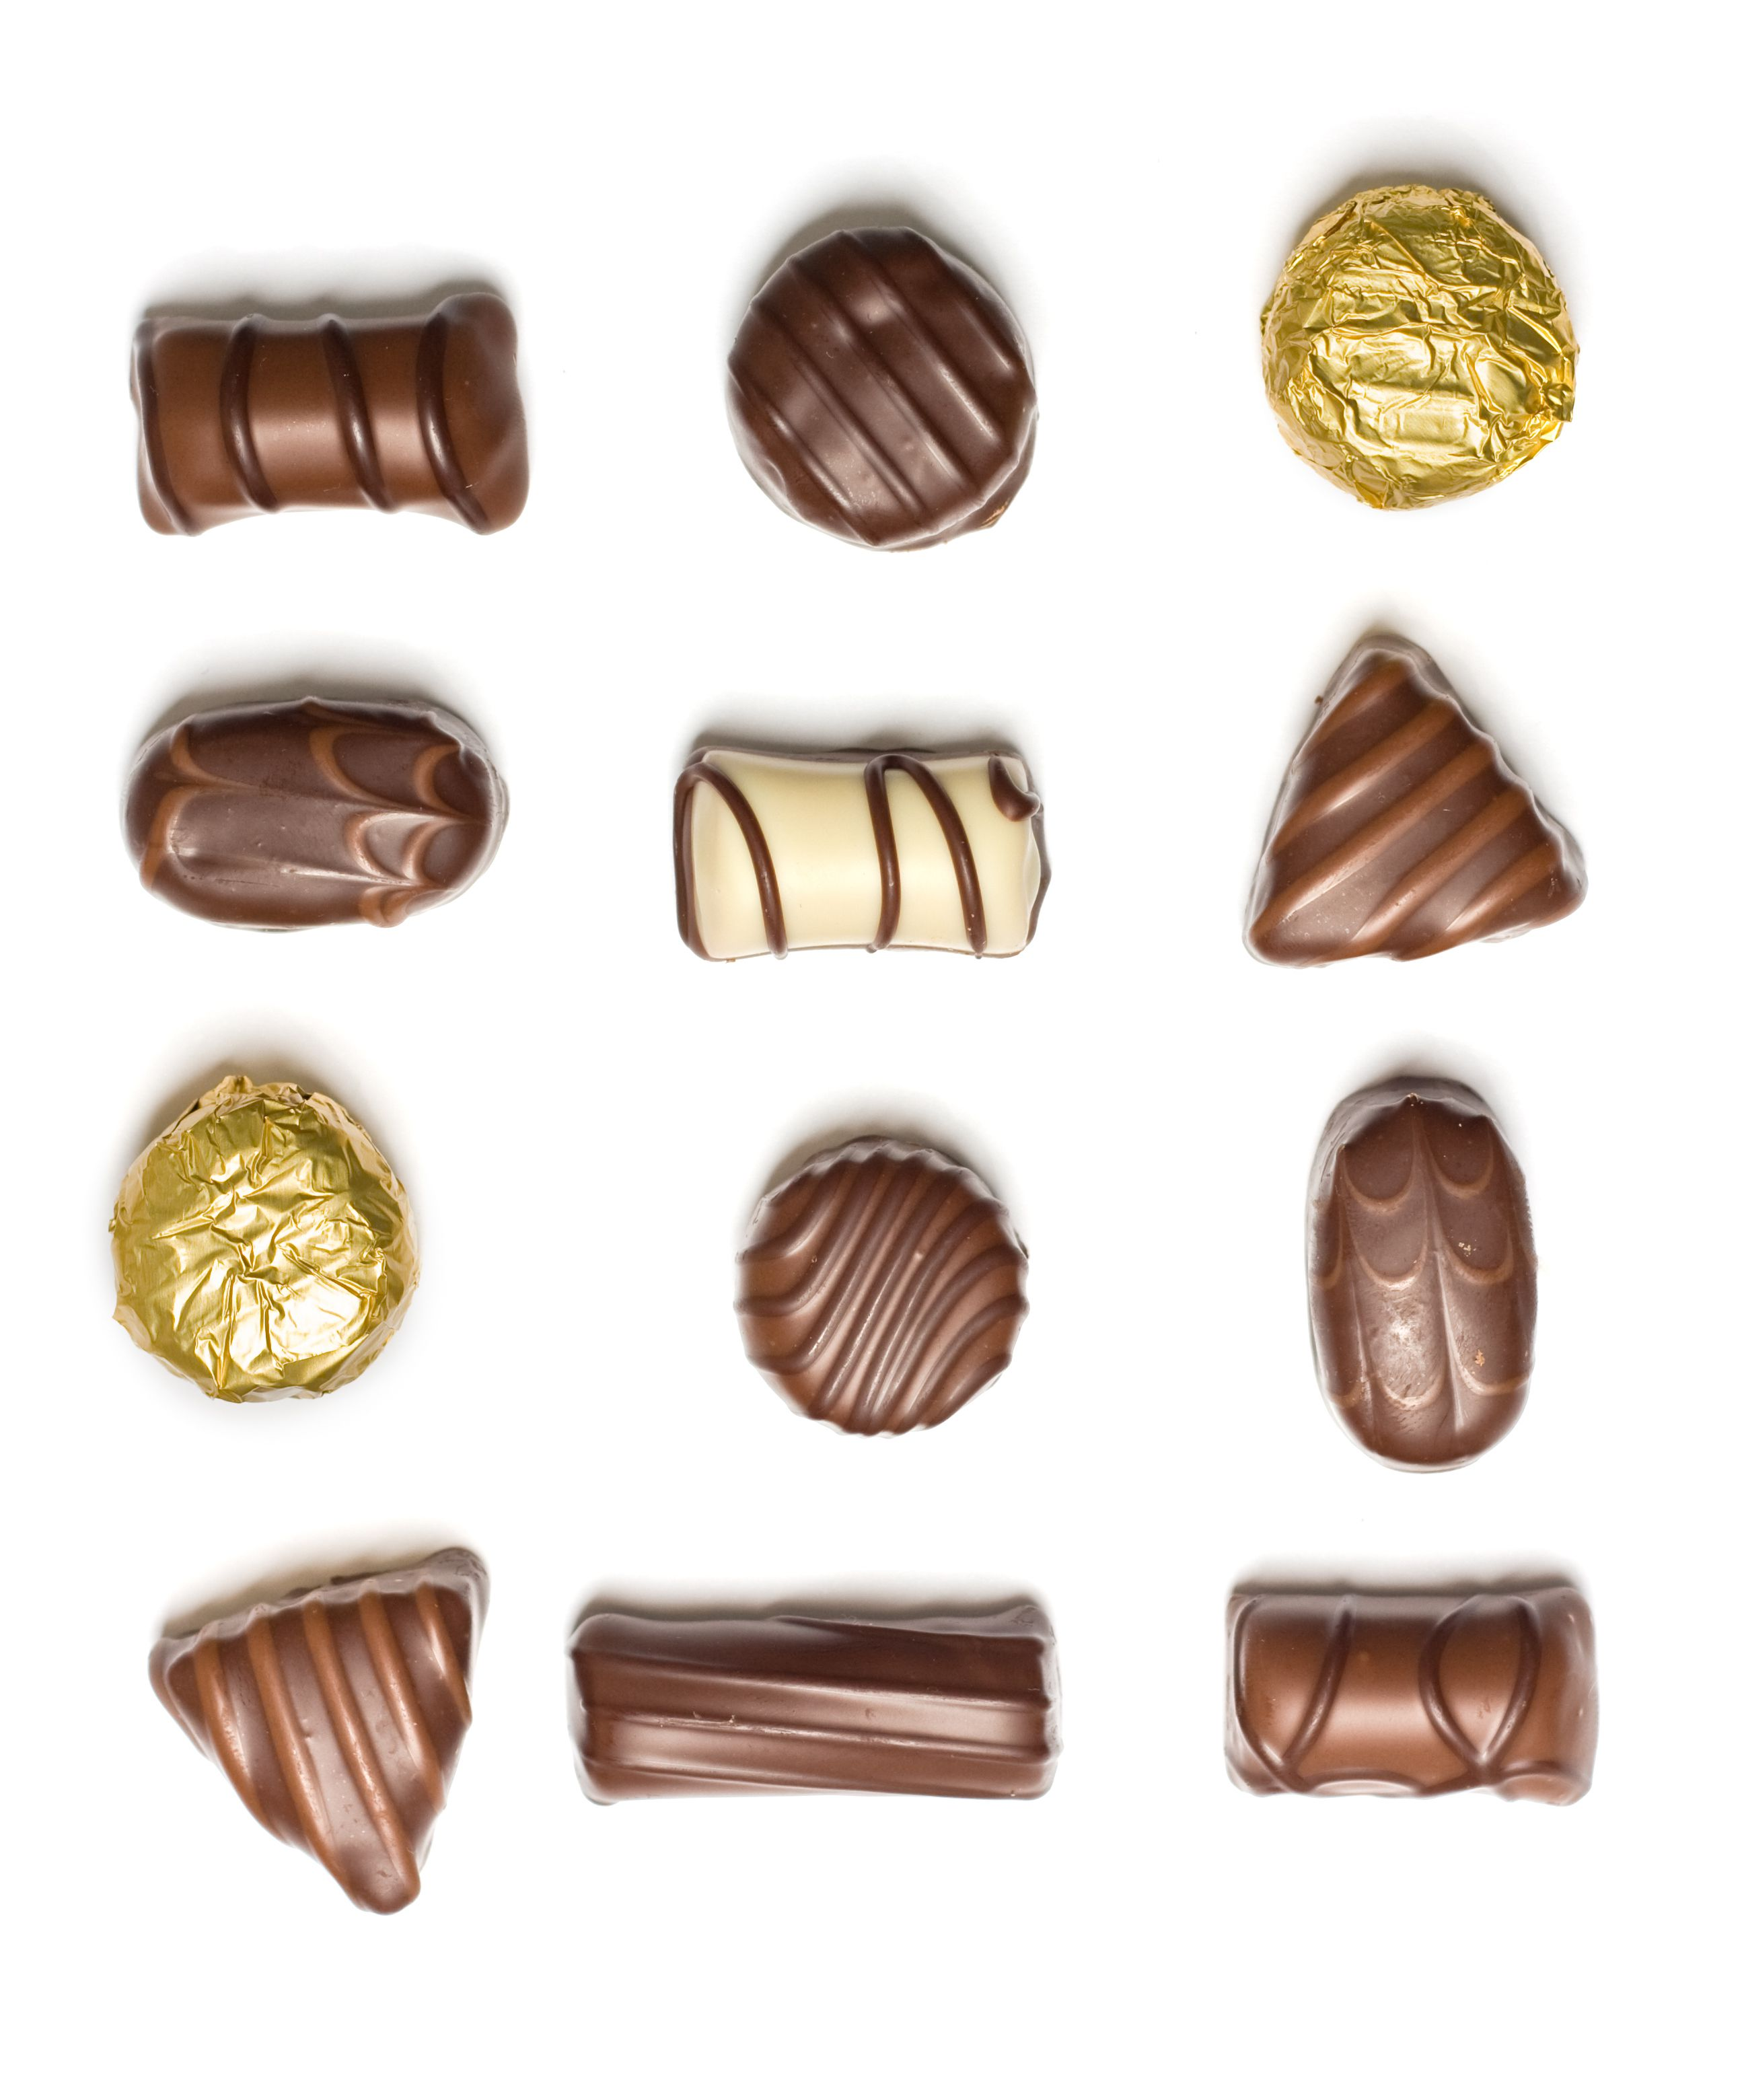 The Best Food Of The Month Clubs For Mail Delivery - Delicious chocolates crafted japanese words texture